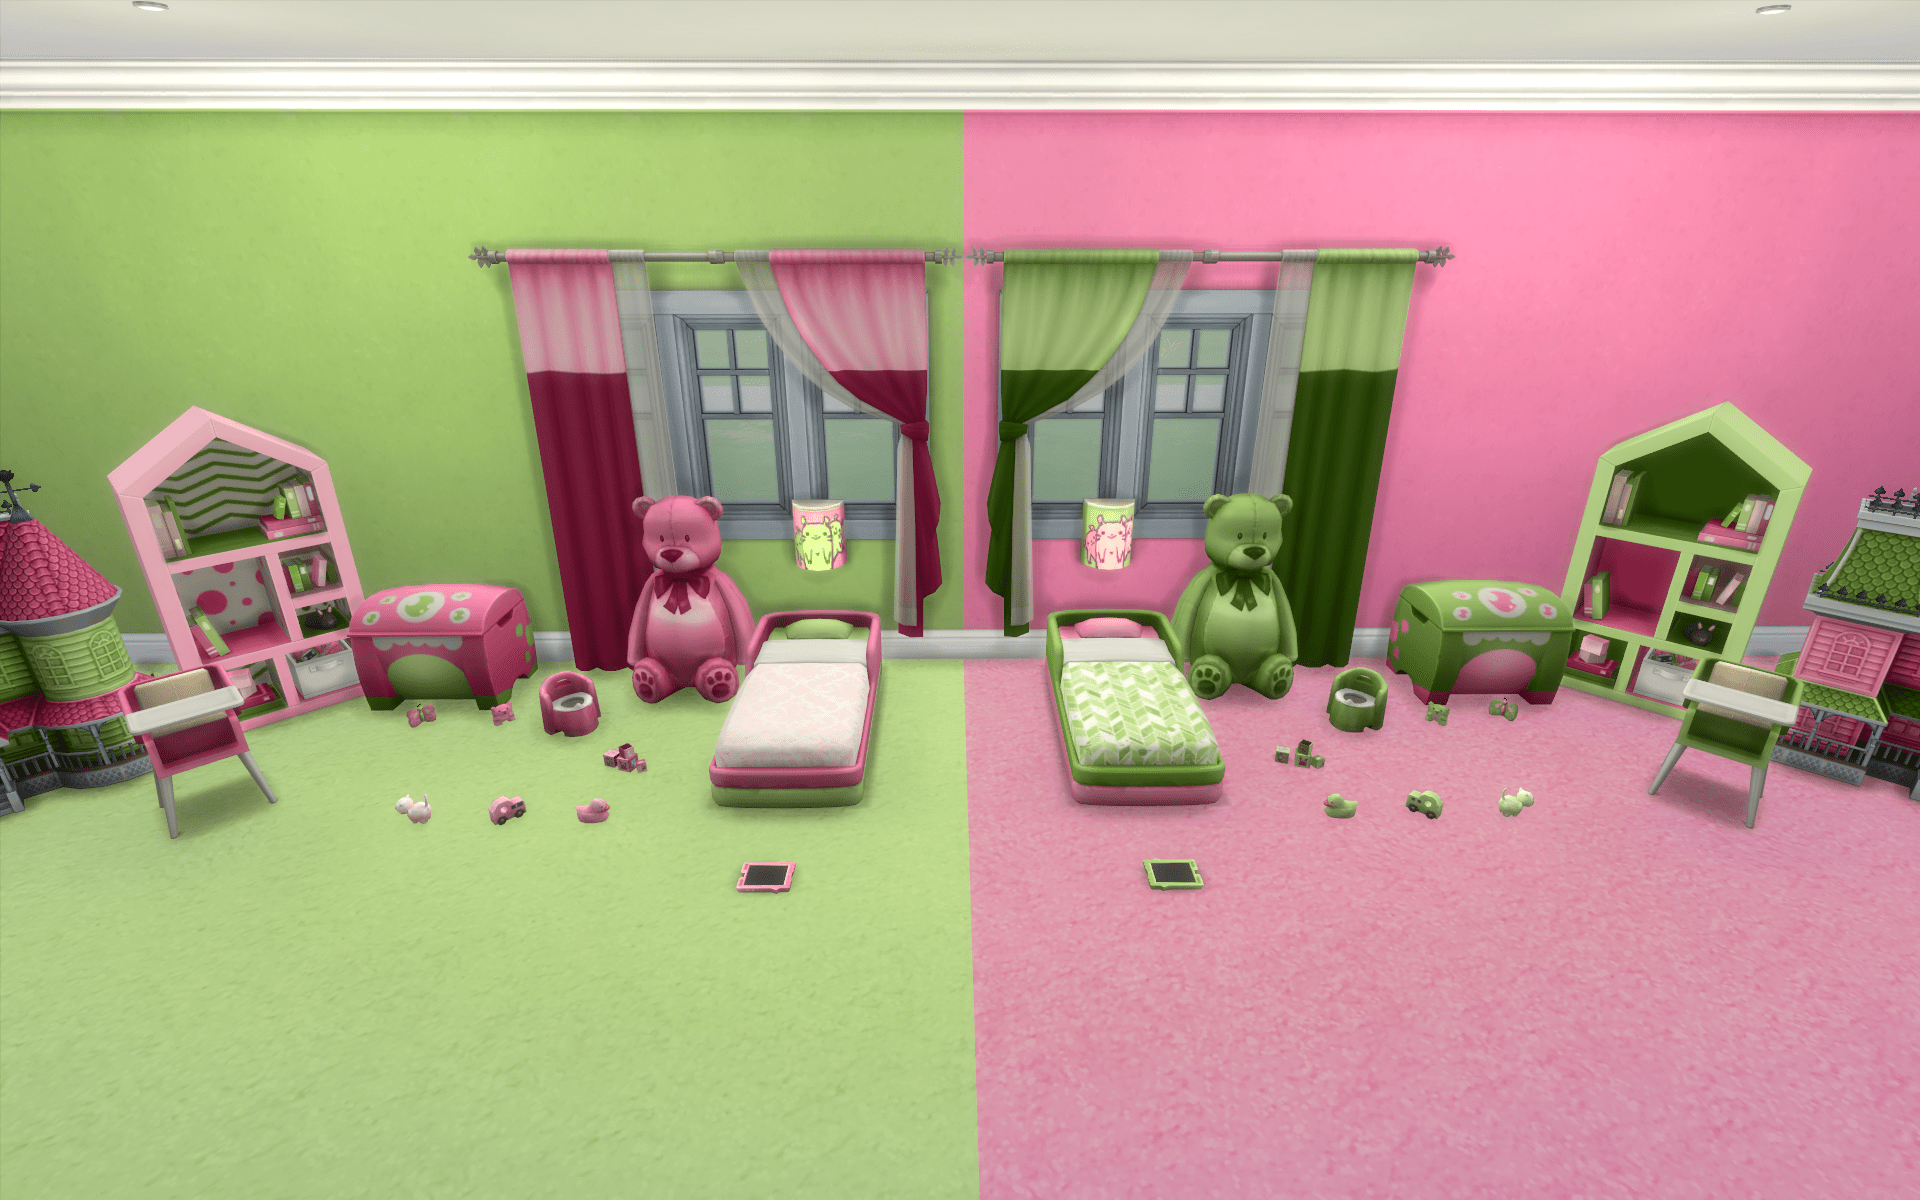 Toddler Girl Bedroom Wallpaper The Sims 4 Mods Sims 4 Trait Vampire And Hair Mods The